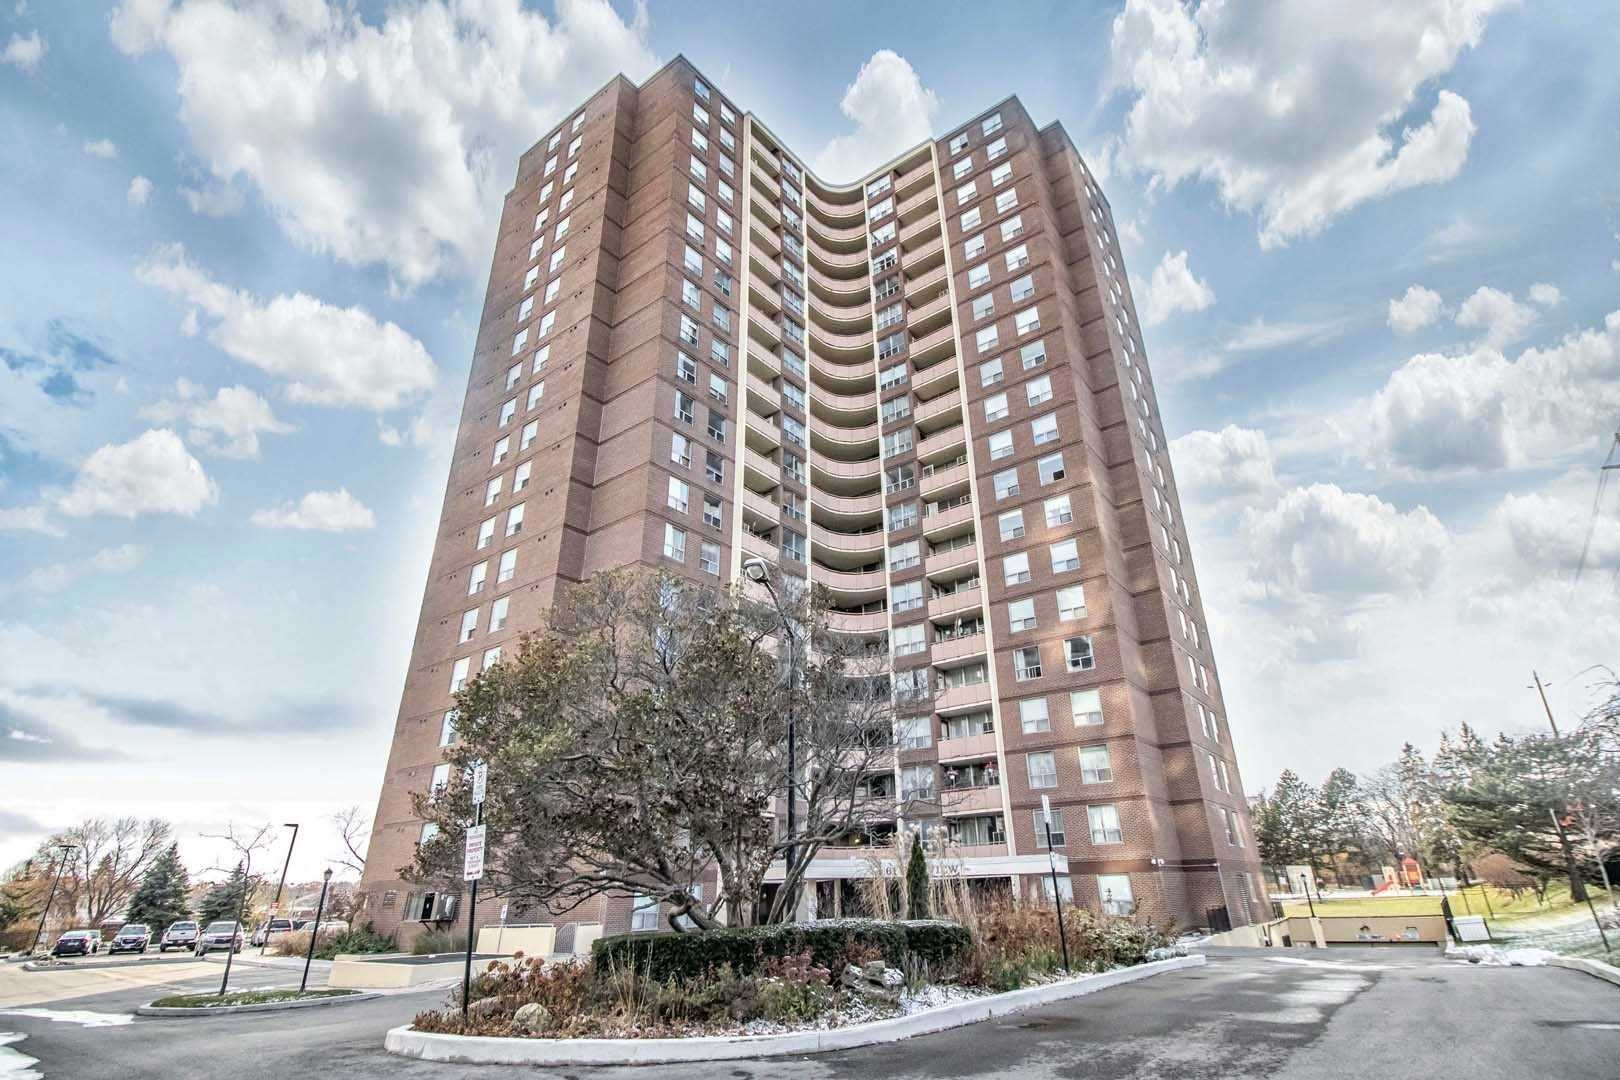 Tastefully Renovated Penthouse Suite, Done Top To Bottom. 1360 Square Feet. Balcony, Great Building, Great View. Fab Top Floor Suite. Rent Includes Most Utilities. Stellar Location, Steps To Ttc. Wonderful Amenities In Building.